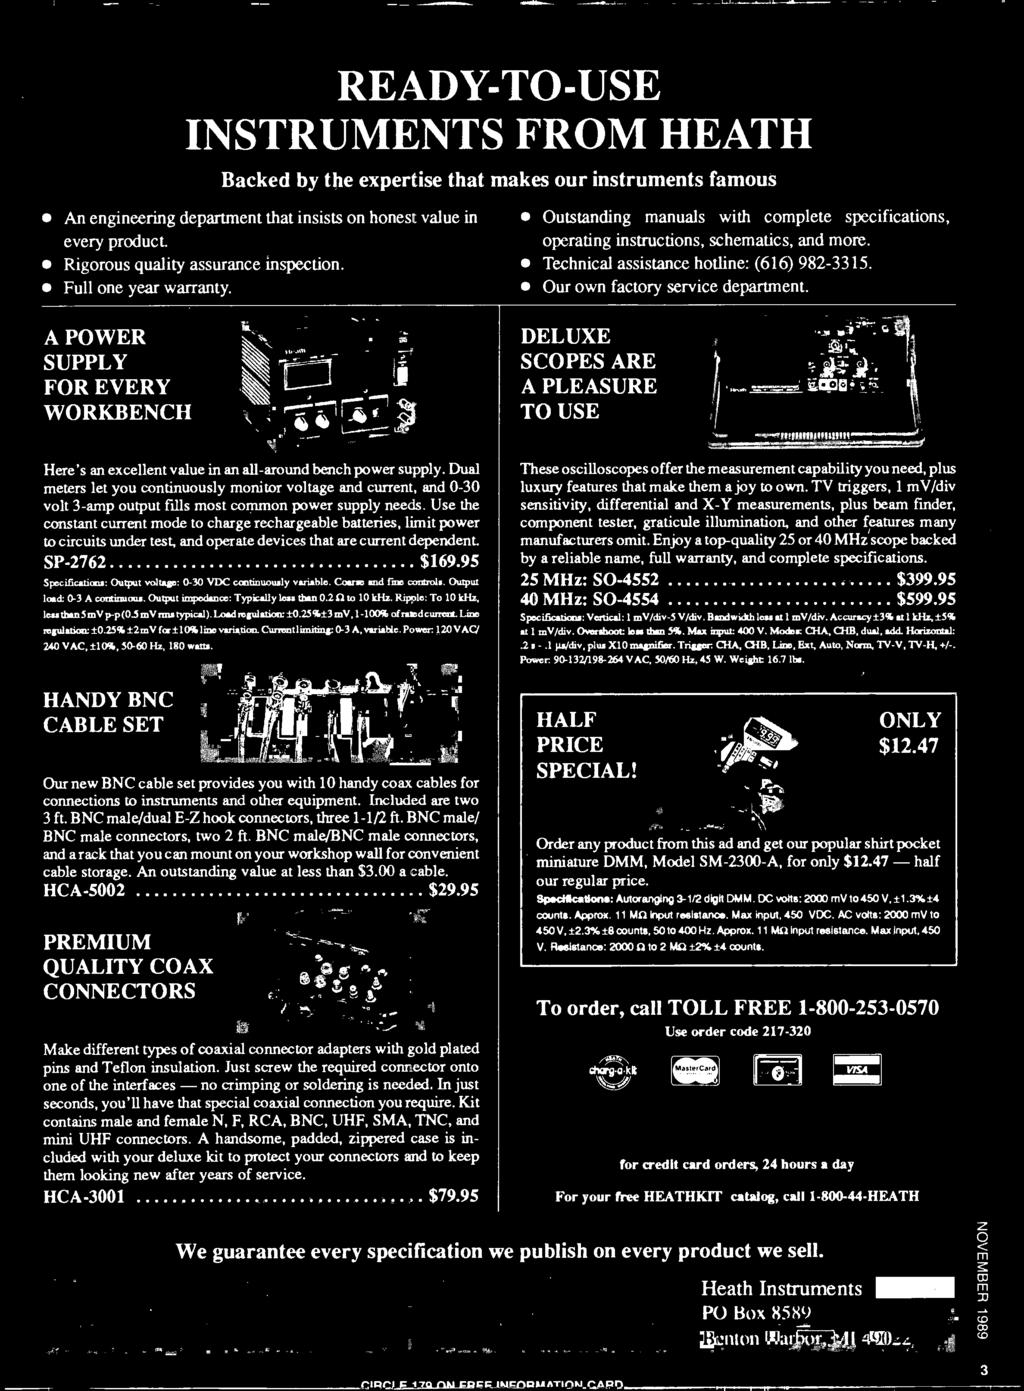 Lectron Swp V1df Build R Es Scene How To Service Cd Players Schematics Of Delabs Relay Driver Electromagnetic Technical Assistance Hotline 616 982 3315 Our Own Factory Department